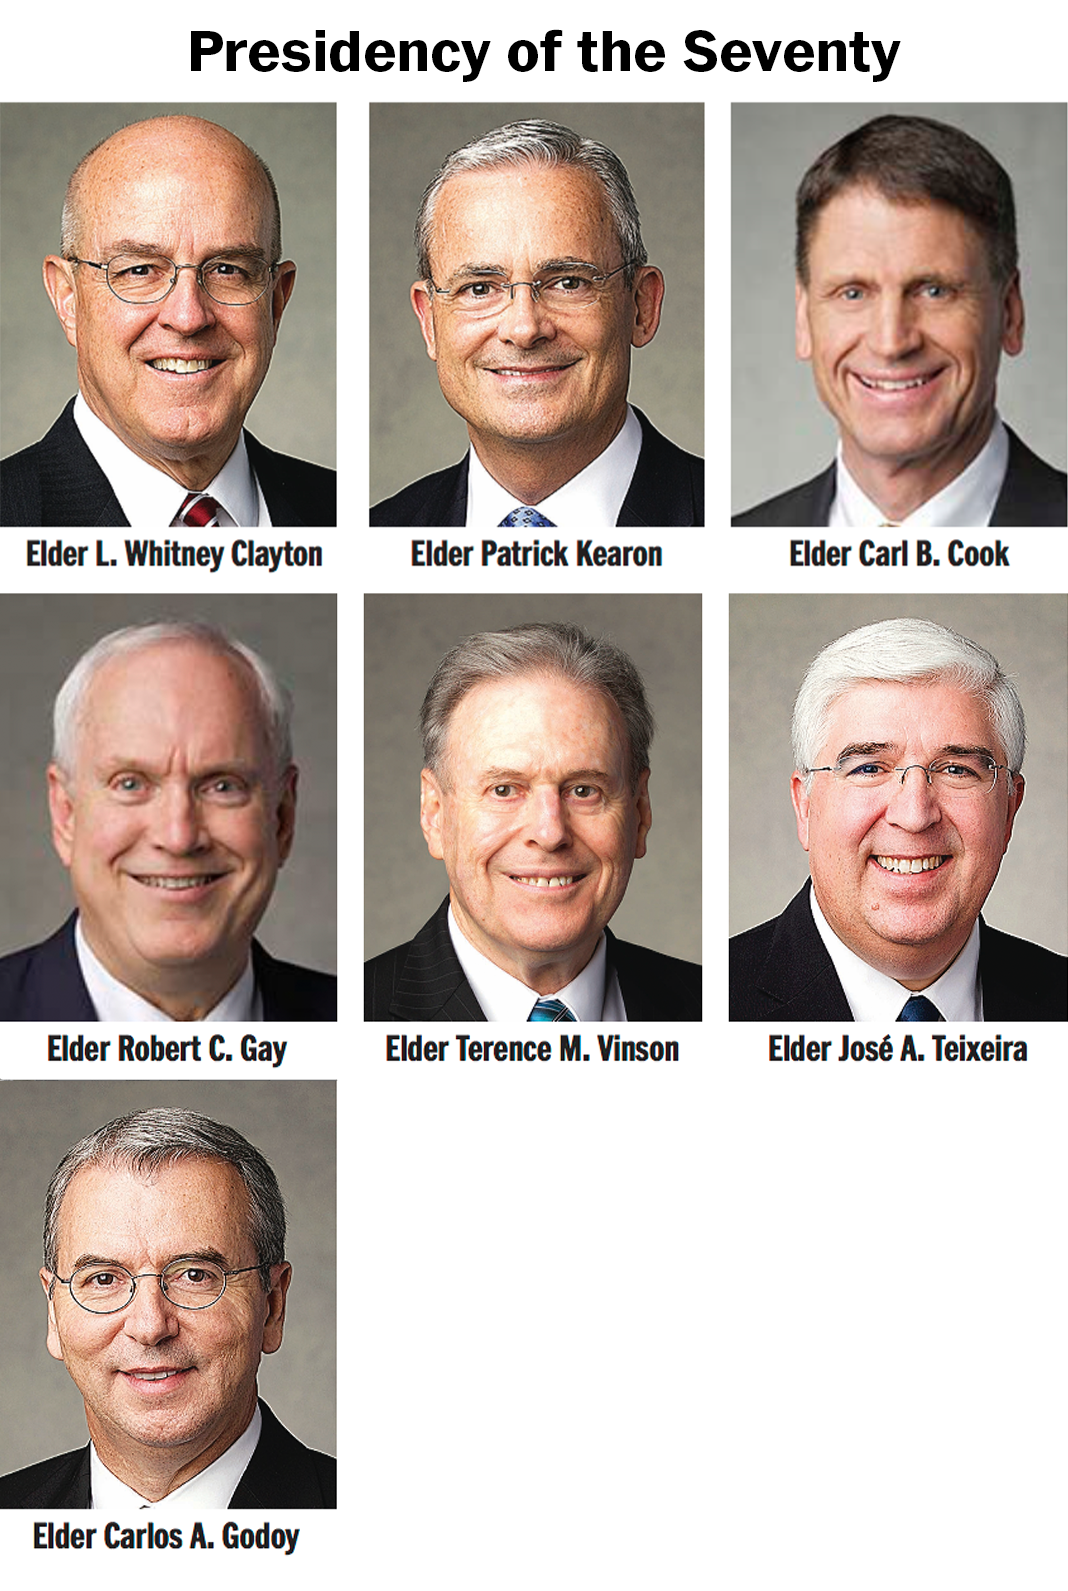 The Presidency of the Seventy: Elder L. Whitney Clayton, Elder Patrick Kearon, Elder Carl B. Cook, Elder Robert C. Gay, Elder Terrence M. Vinson, Elder José A. Teixeira and Elder Carlos A Godoy.